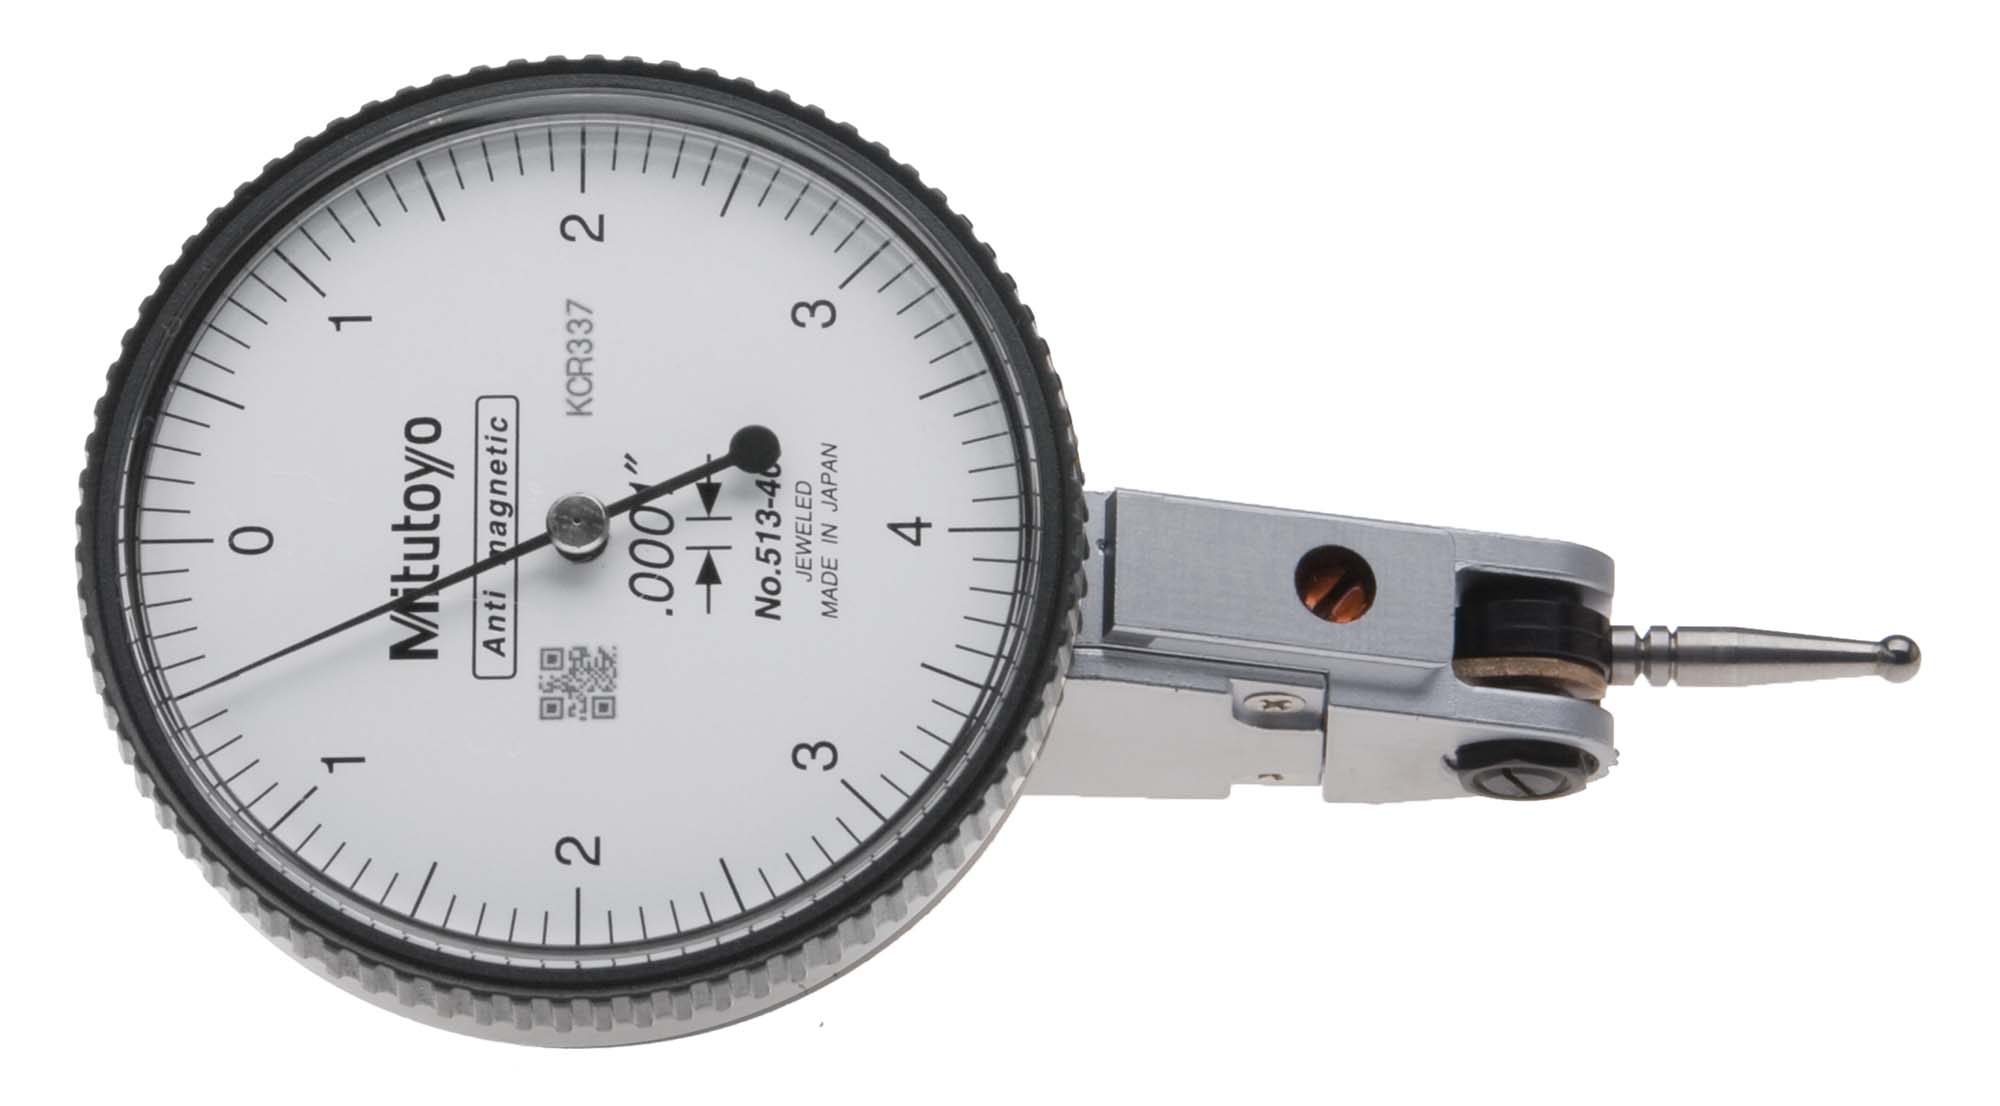 "Mitutoyo 513-403 .0001"" Dial Test Indicator w/ACC-IH22 quill holder"